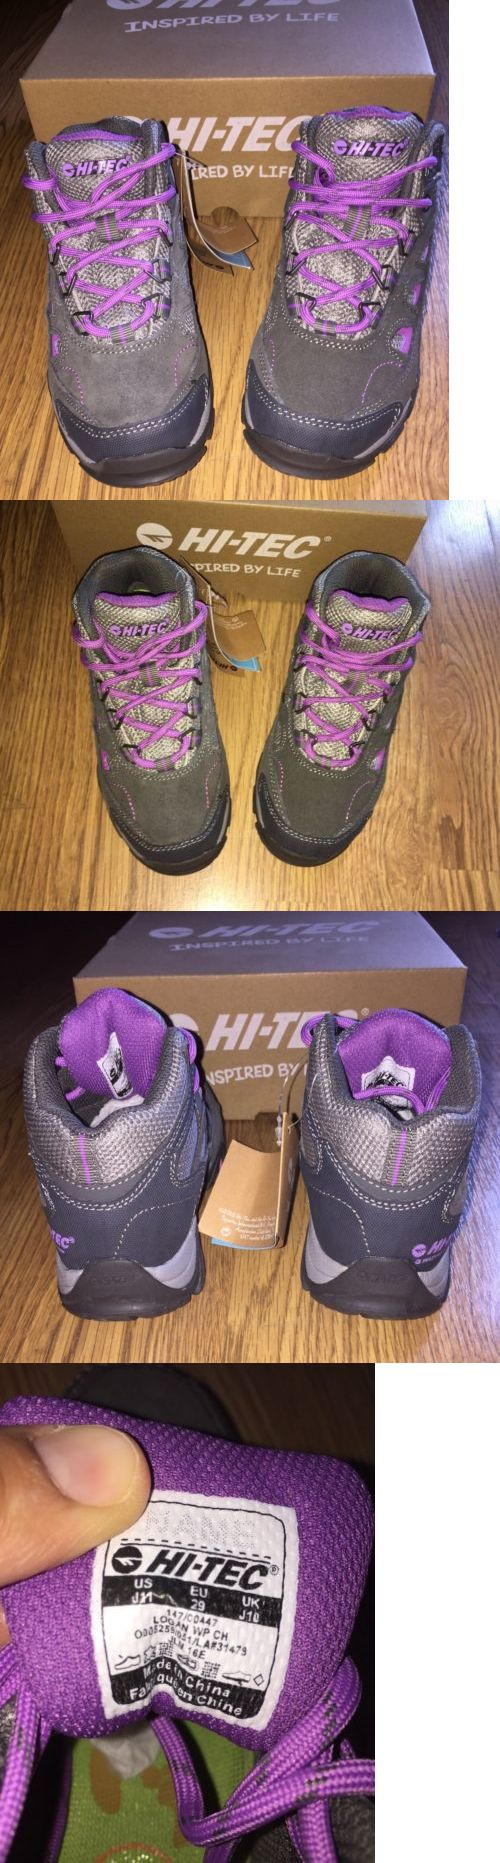 Kids 181394: Girls Youth Hi-Tec Logan Wp Mid Youth Hiking Boots Size 11 Gray Purple -> BUY IT NOW ONLY: $40 on eBay!